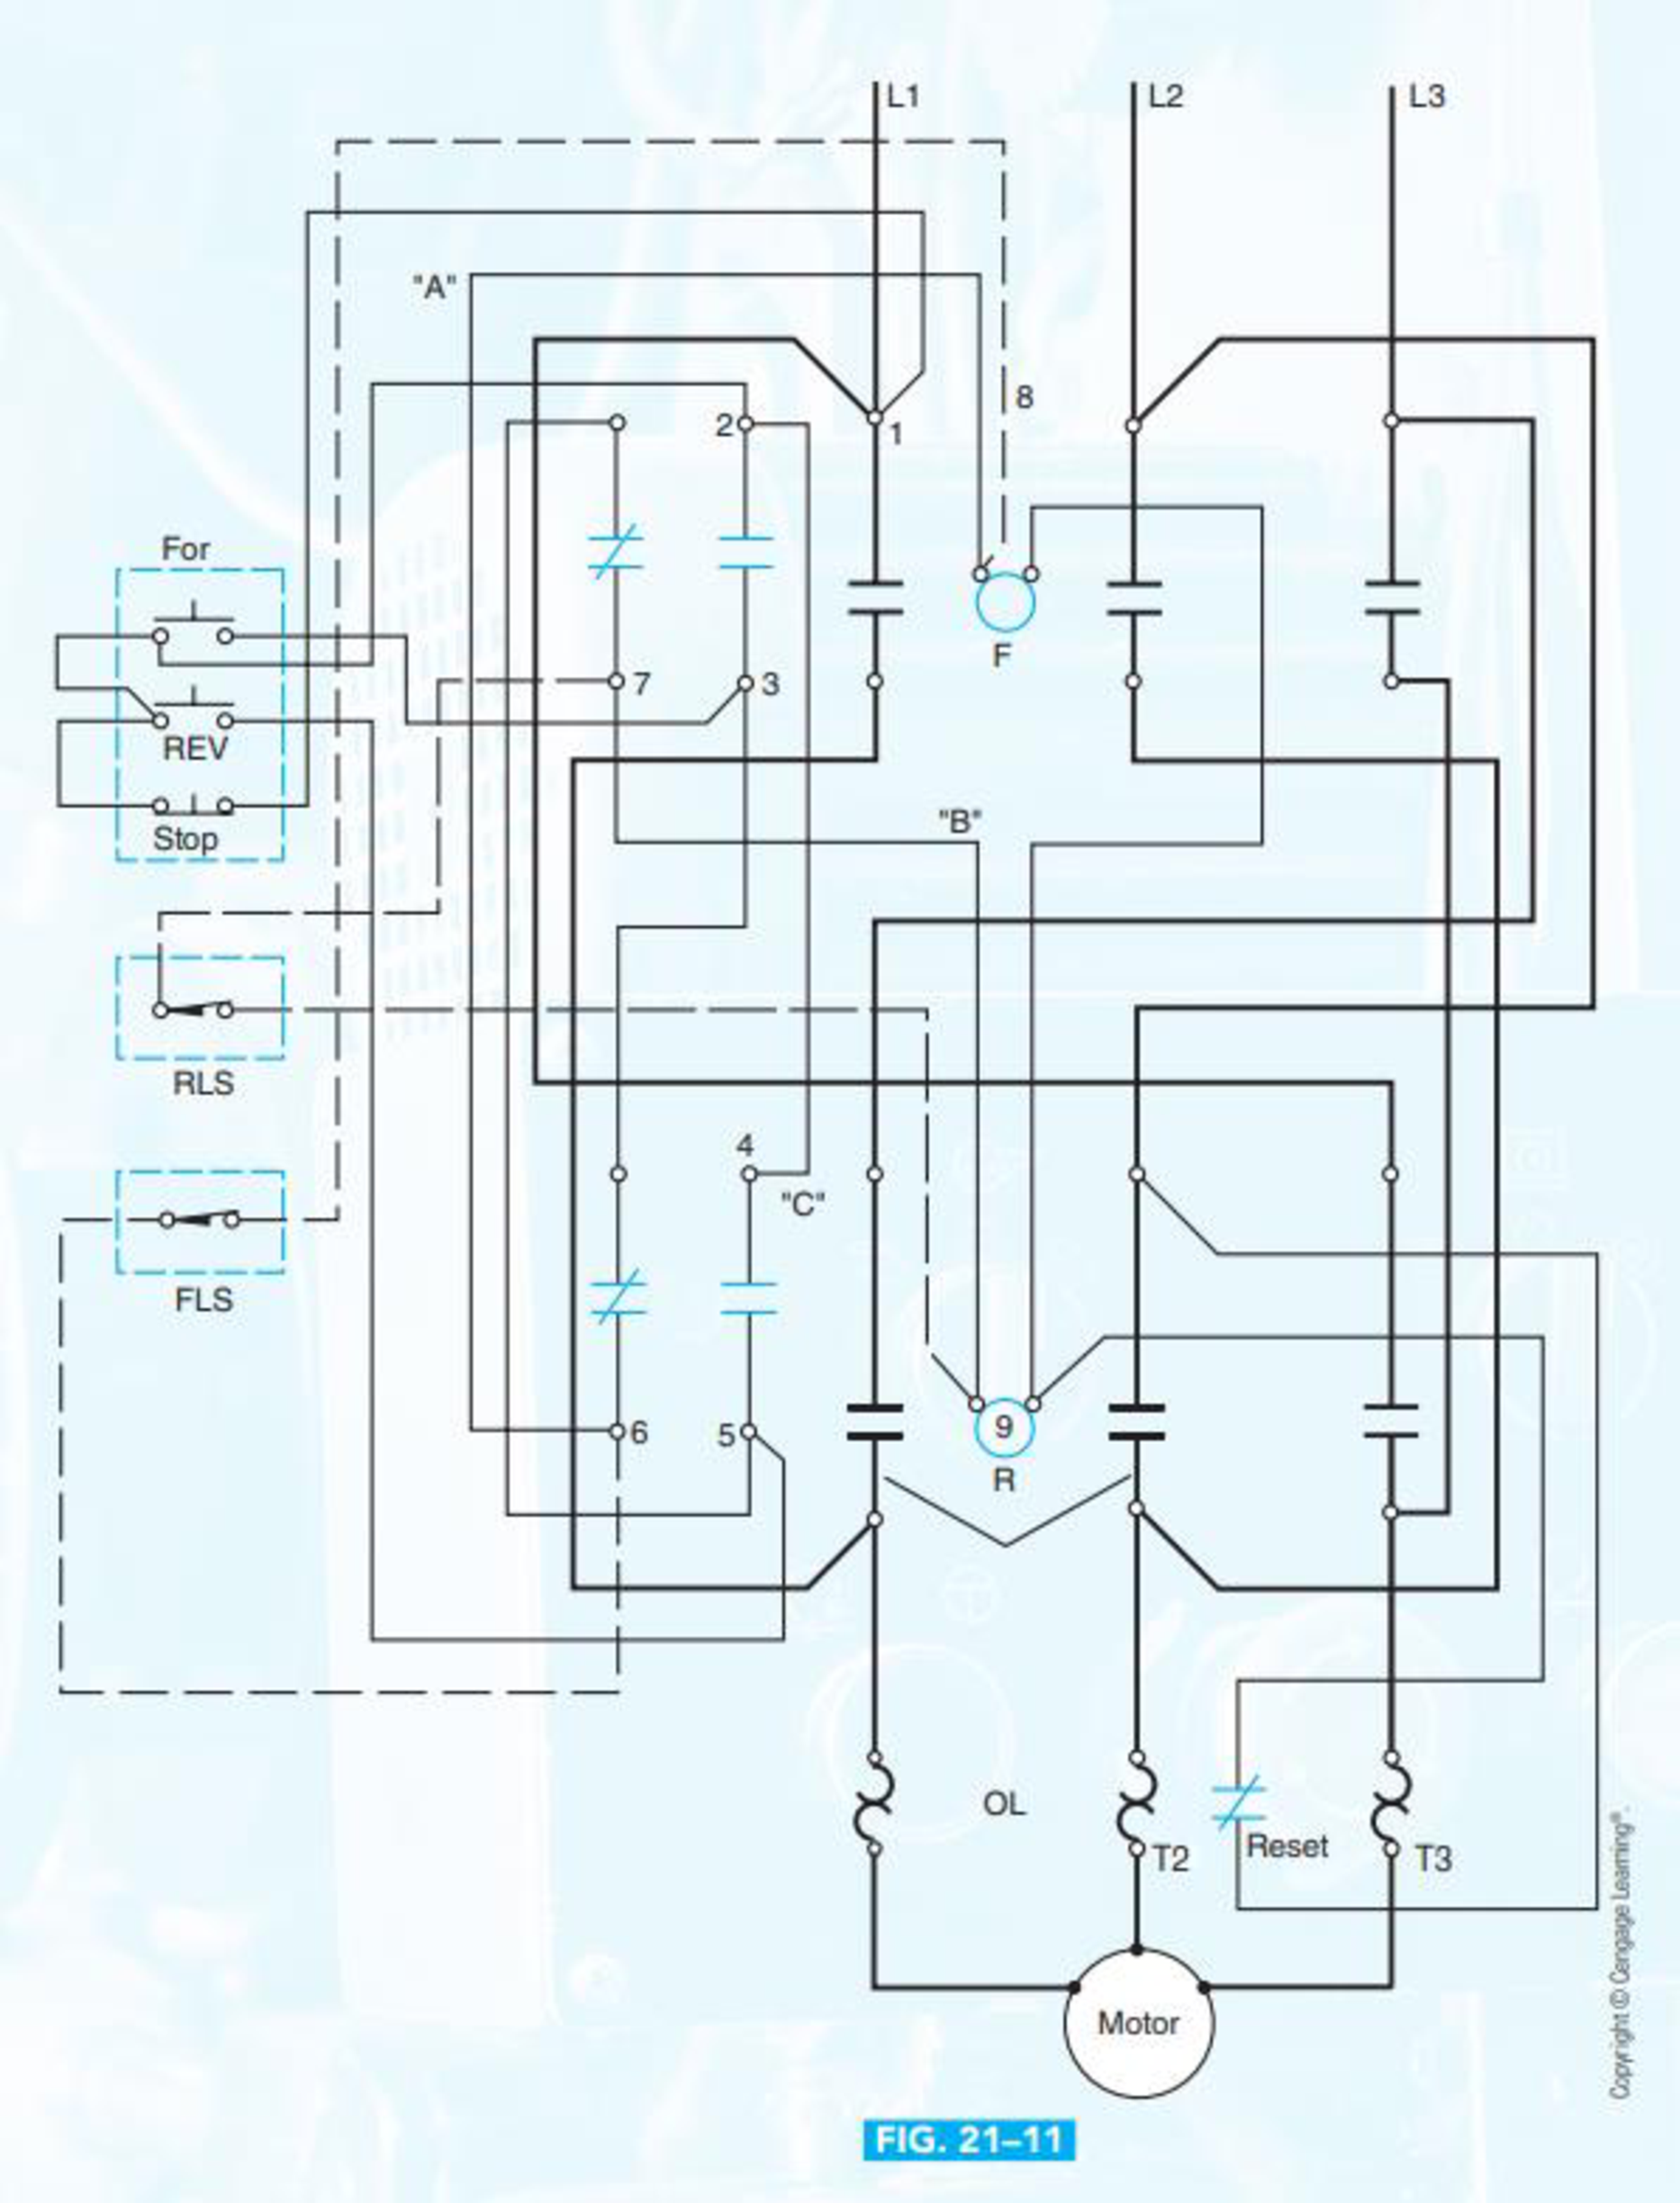 Chapter 21, Problem 12SQ, Convert the control circuit only, Figure 2111, from the wiring diagram to an elementary diagram.